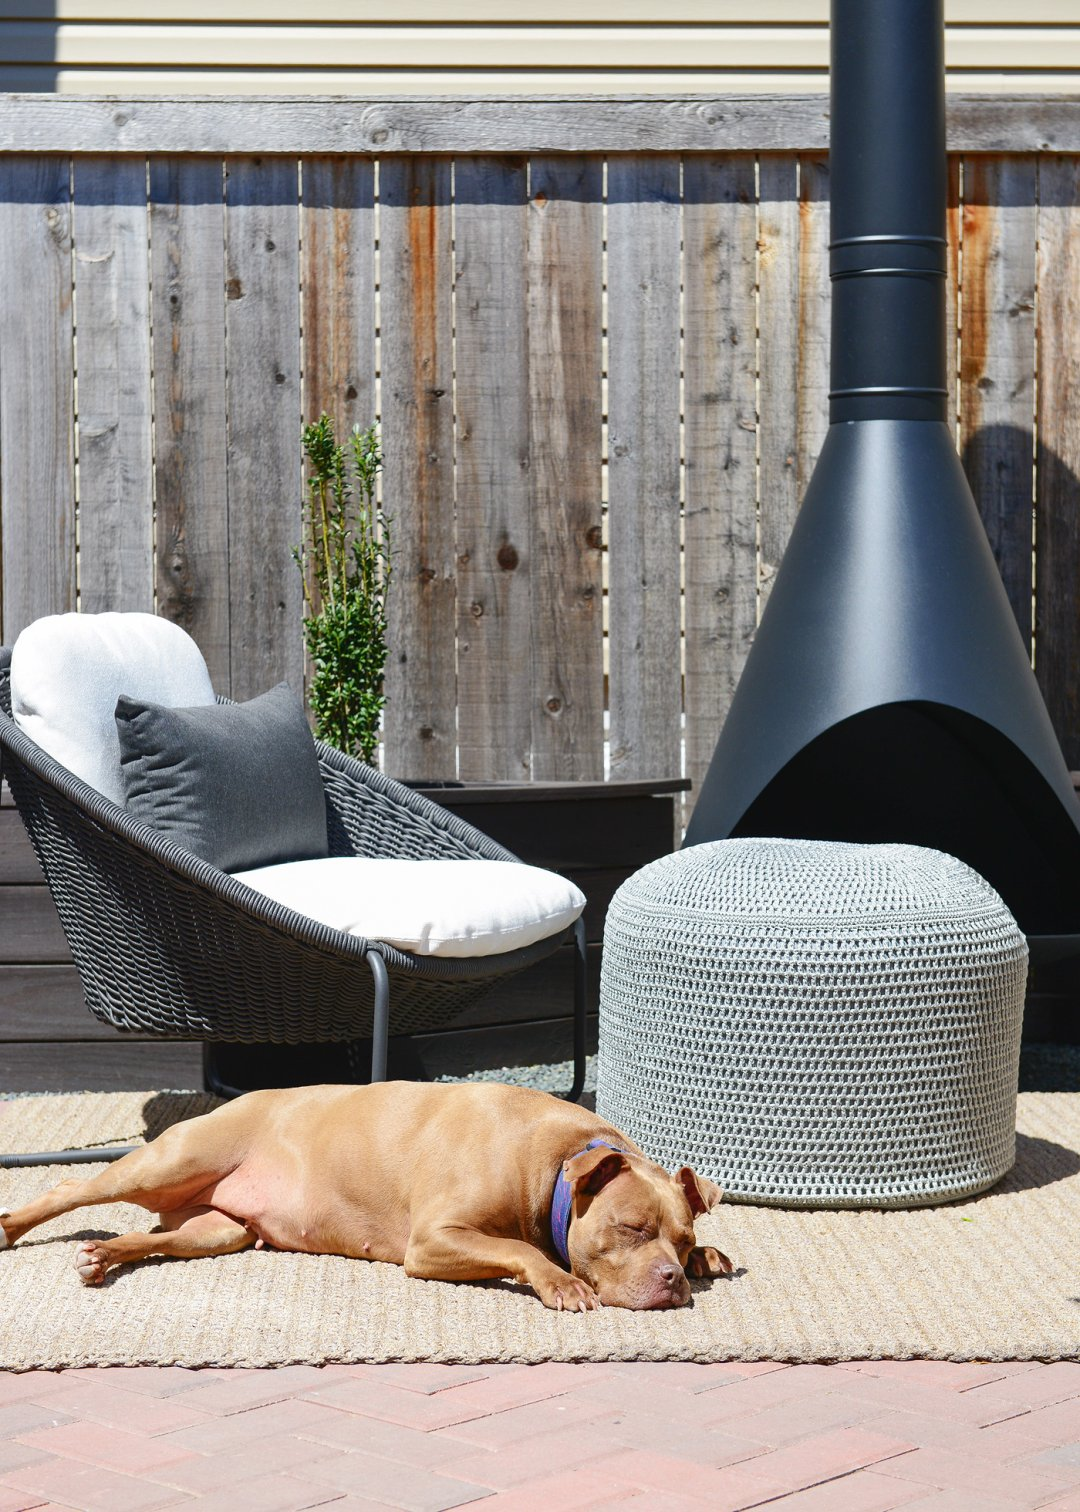 Dog laying on rug next to grey pouf and black wicker chair with white cushion and grey pillow and black fireplace in background